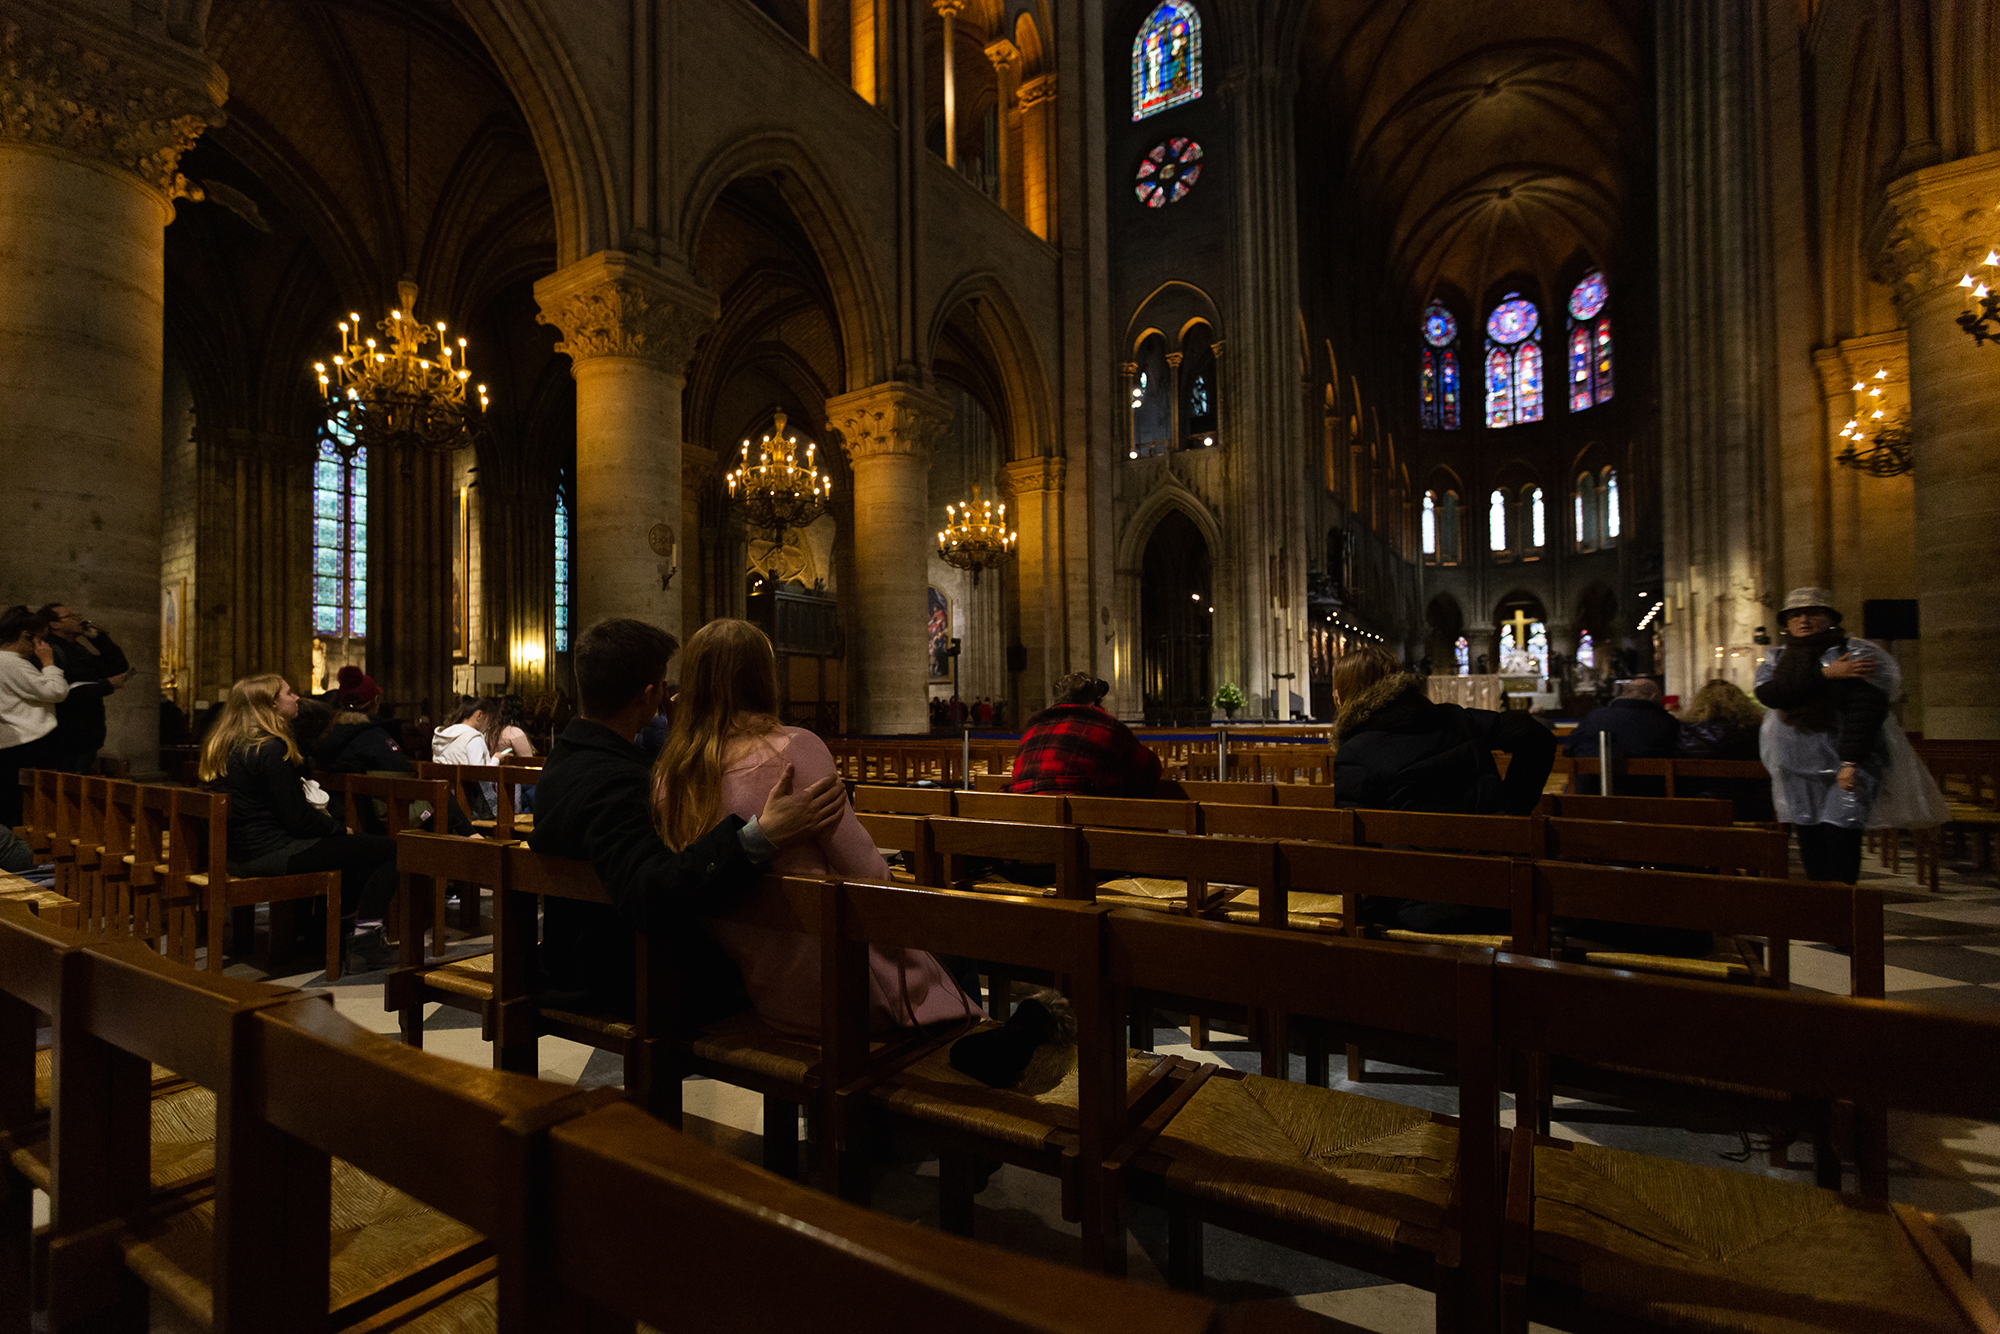 A young couple embraces as they admire the interior of Notre Dame.